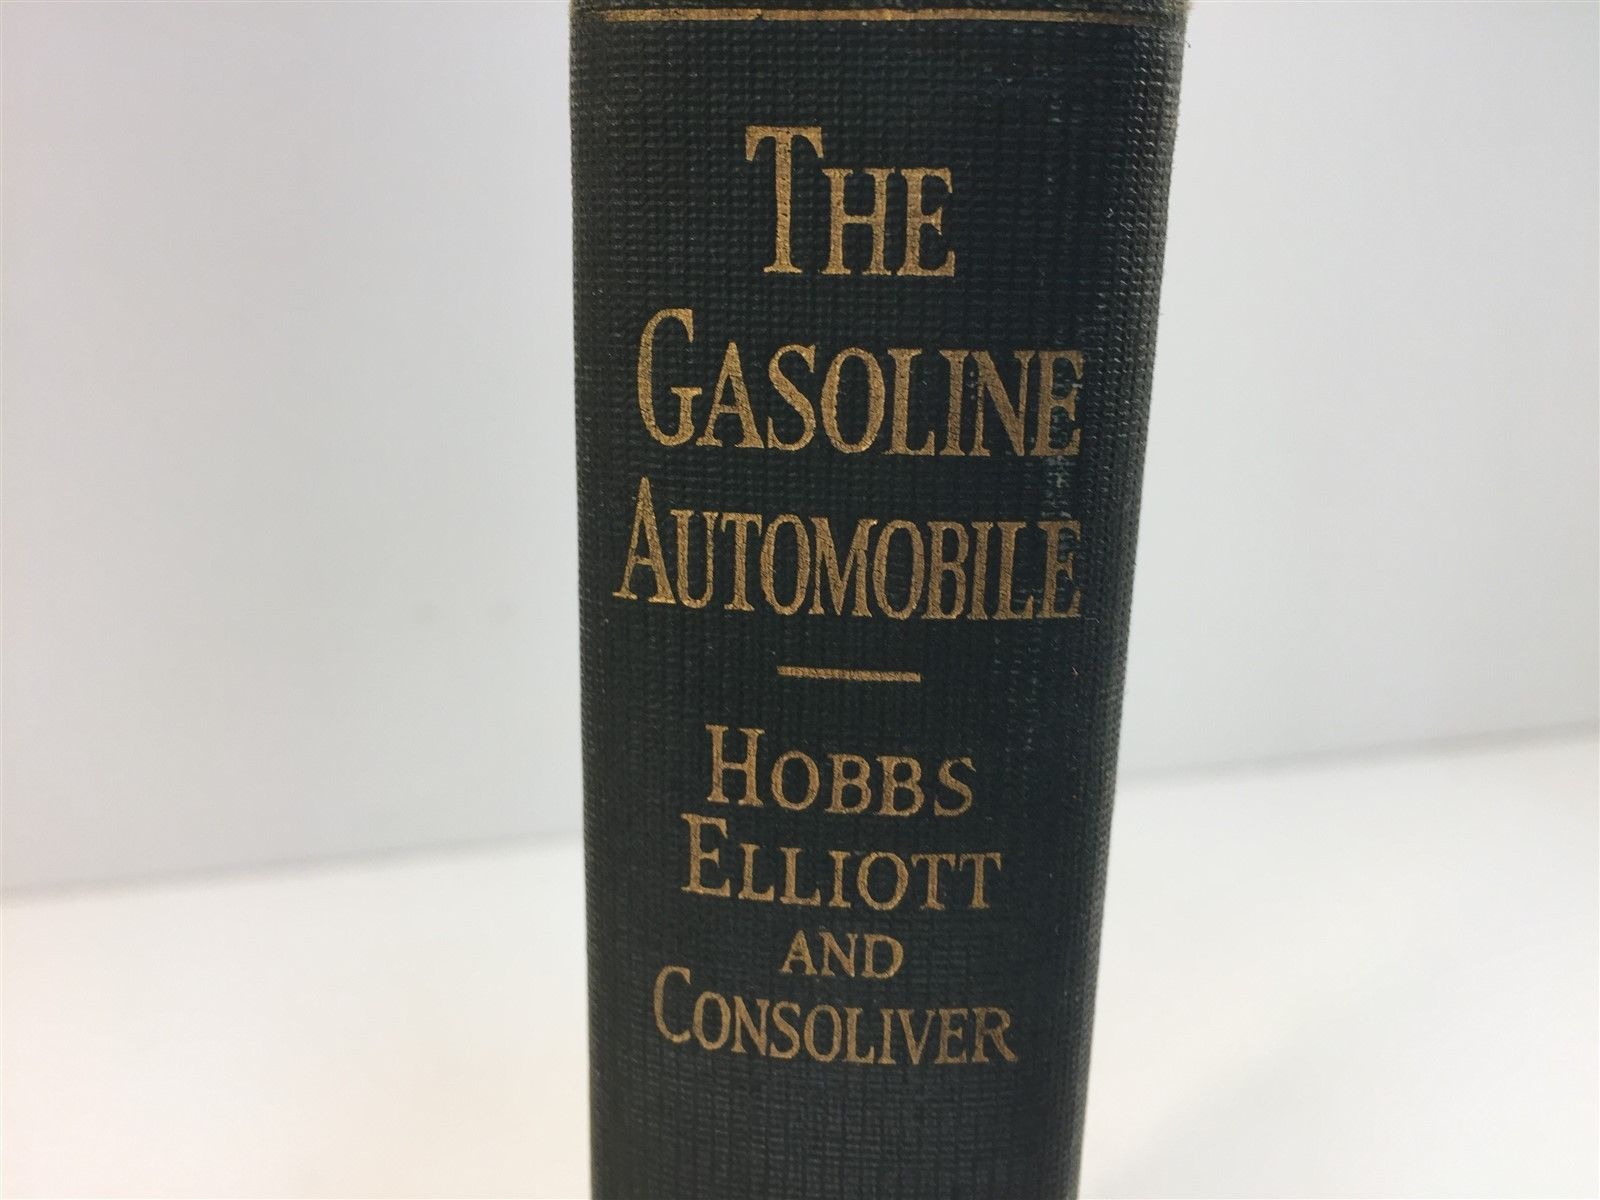 The Gasoline Automobile By Elliott & Consolver Hard Cover 1924 Illustrated 3rd